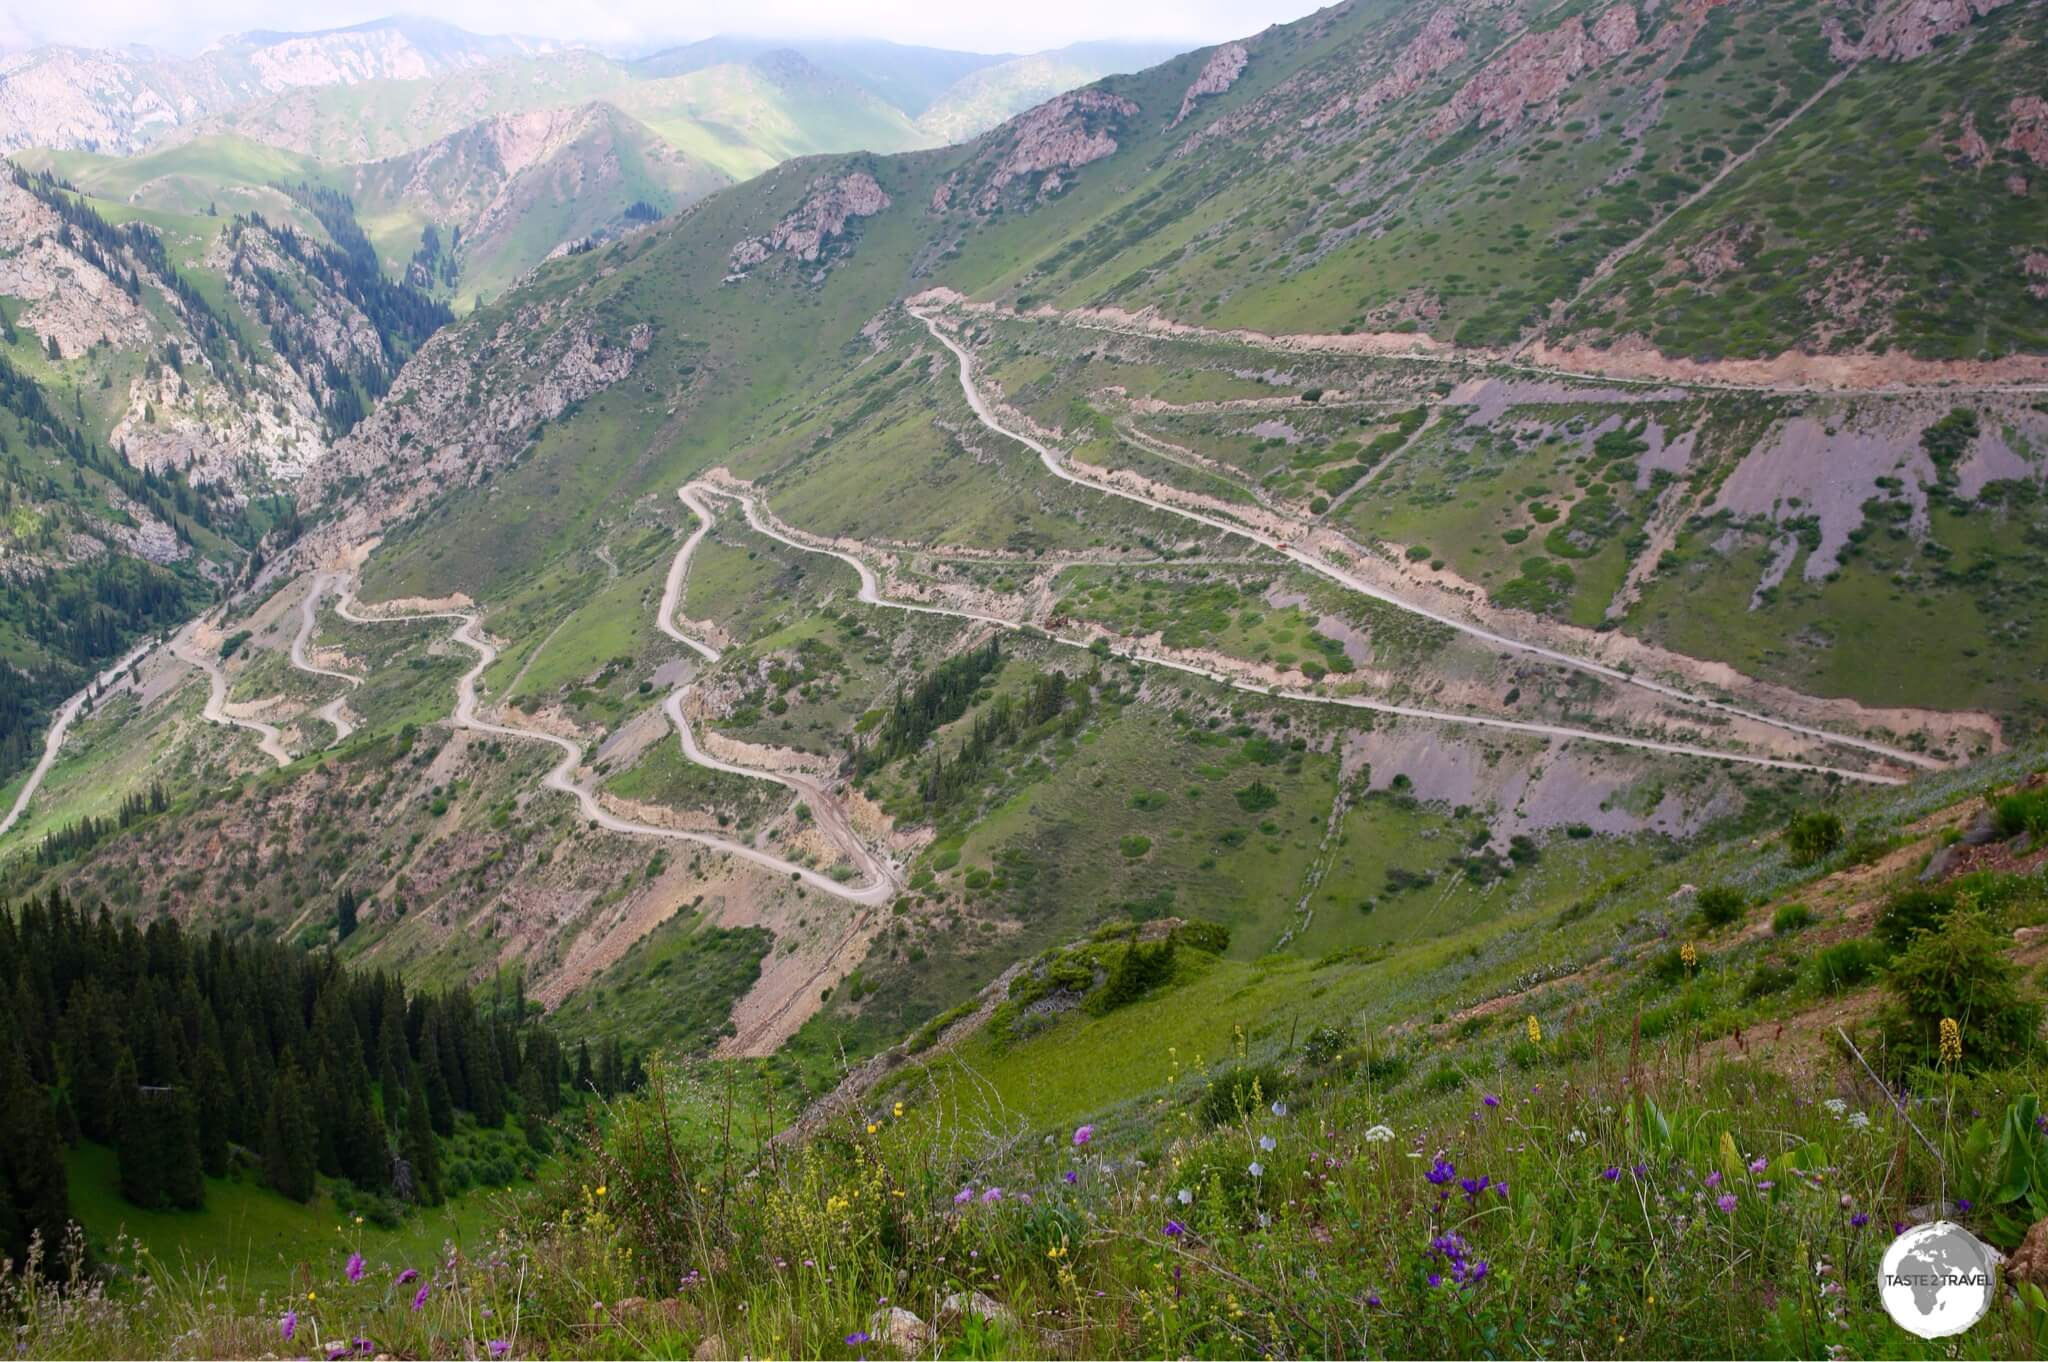 The road which leads to Moldo-Ashuu pass, a high mountain pass which sits at an elevation of 3,346 m (10,977 feet)